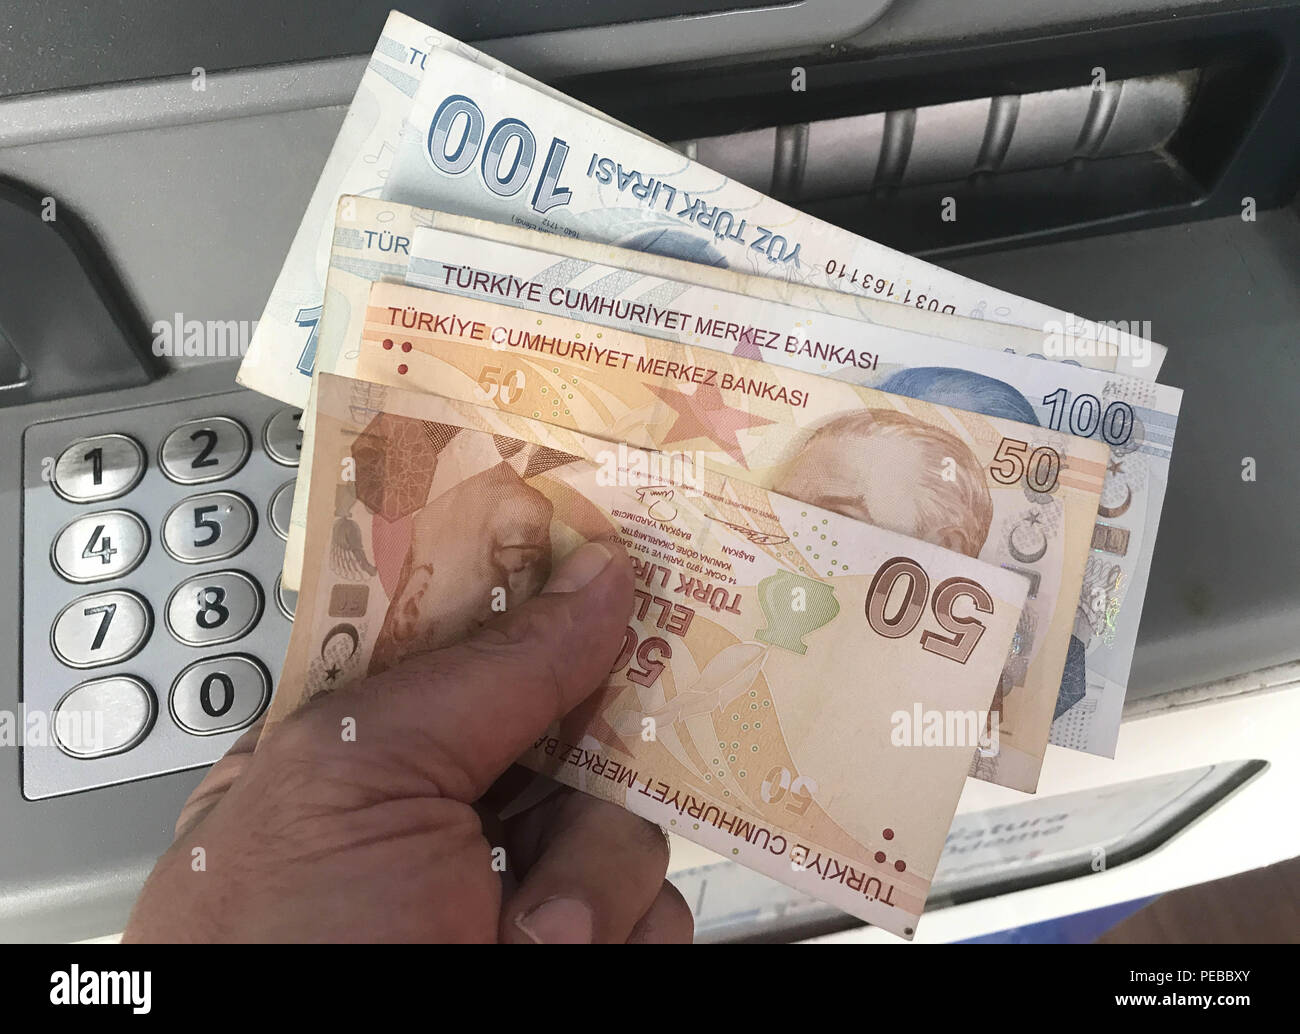 (180814) -- ISTANBUL, Aug. 14, 2018 (Xinhua) -- A tourist company employee counts Turkish lira in Istanbul, Turkey, on Aug. 14, 2018. Turkish President Recep Tayyip Erdogan announced Tuesday to boycott U.S. electronic products amid an ongoing and deepening rift between the two NATO allies over a number of issues. Erdogan reiterated that the recent plunge of Turkish lira and stocks was caused by an economic attack by U.S. President Donald Trump and his administration. The Turkish lira has recovered against the dollar and euro early Tuesday, up more than 4.5 percent at 6.57 lira against one U.S Stock Photo